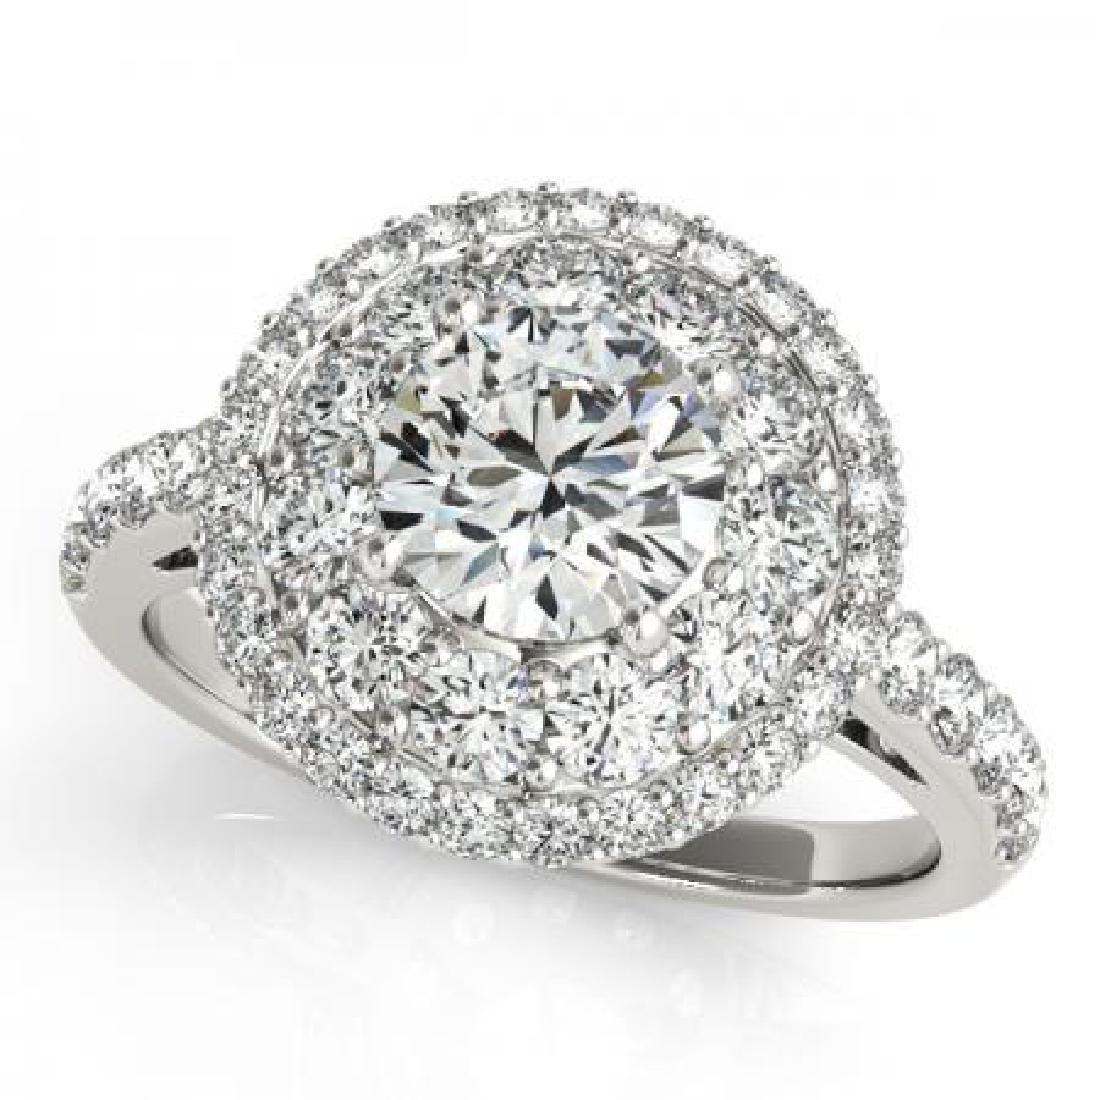 CERTIFIED PLATINUM 1.34 CT G-H/VS-SI1 DIAMOND HALO ENGA